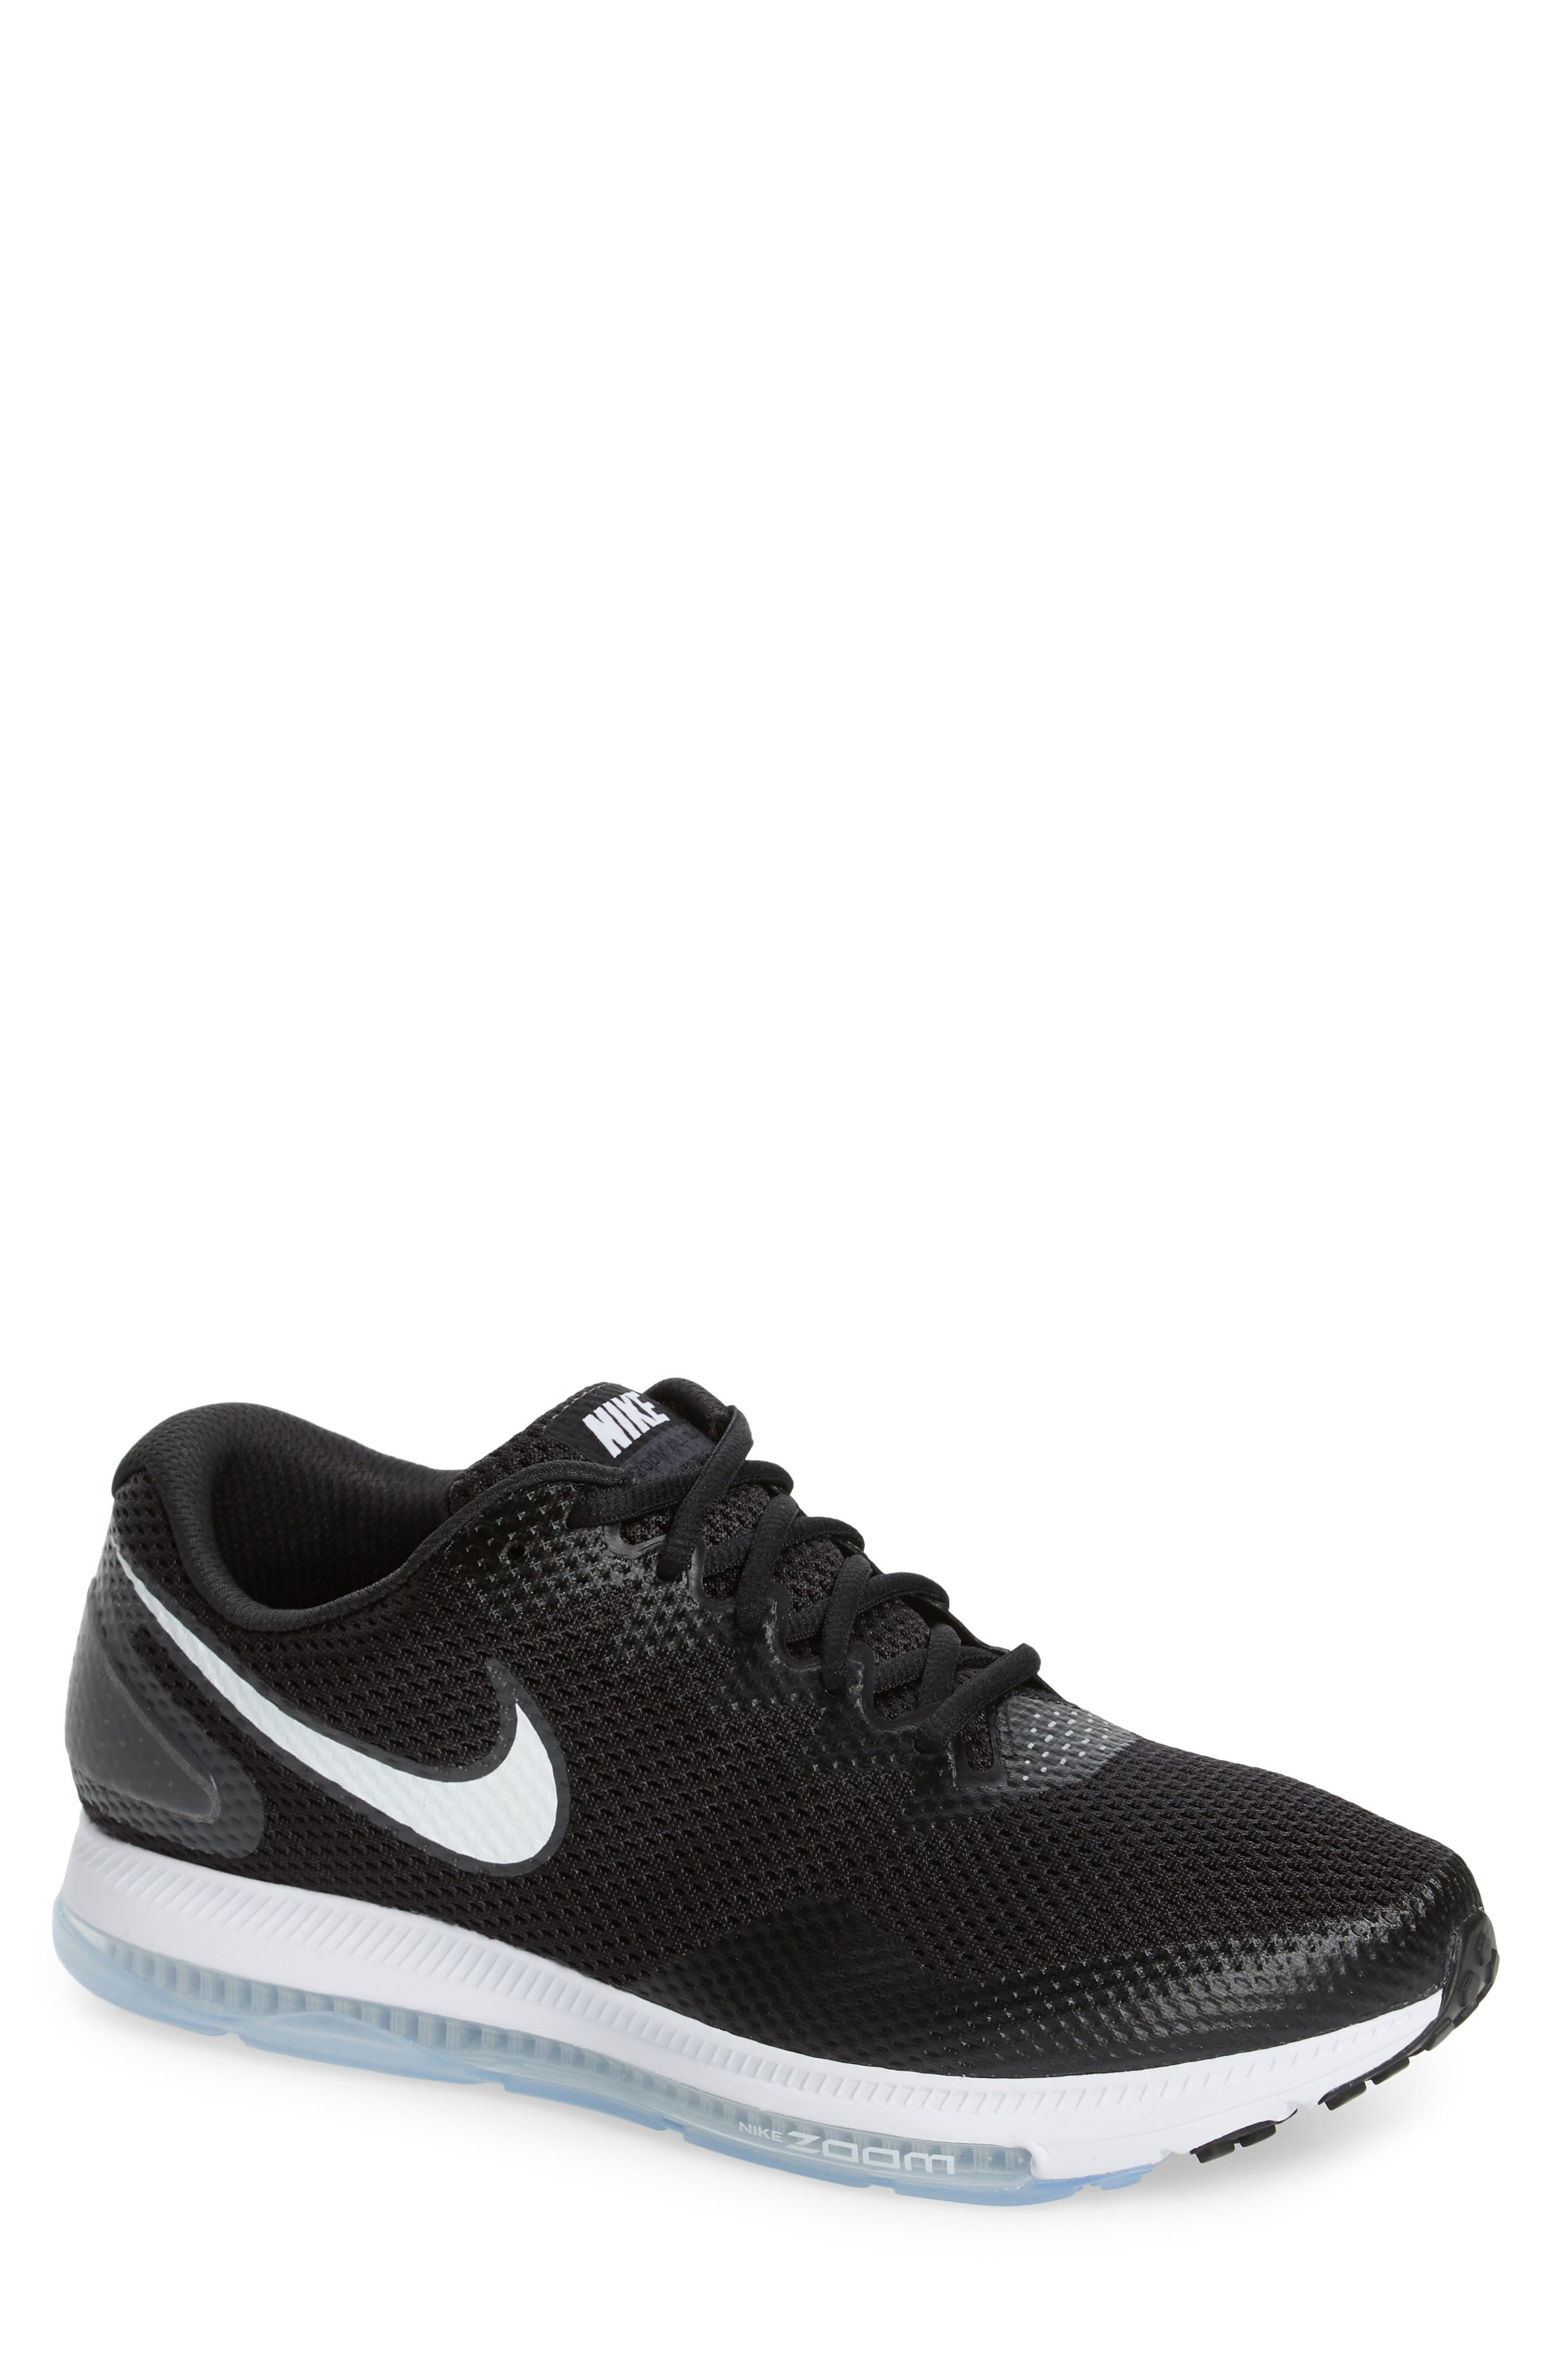 Zoom All Out Low 2 Running Shoe,                         Main,                         color, Black/ White/ Anthracite